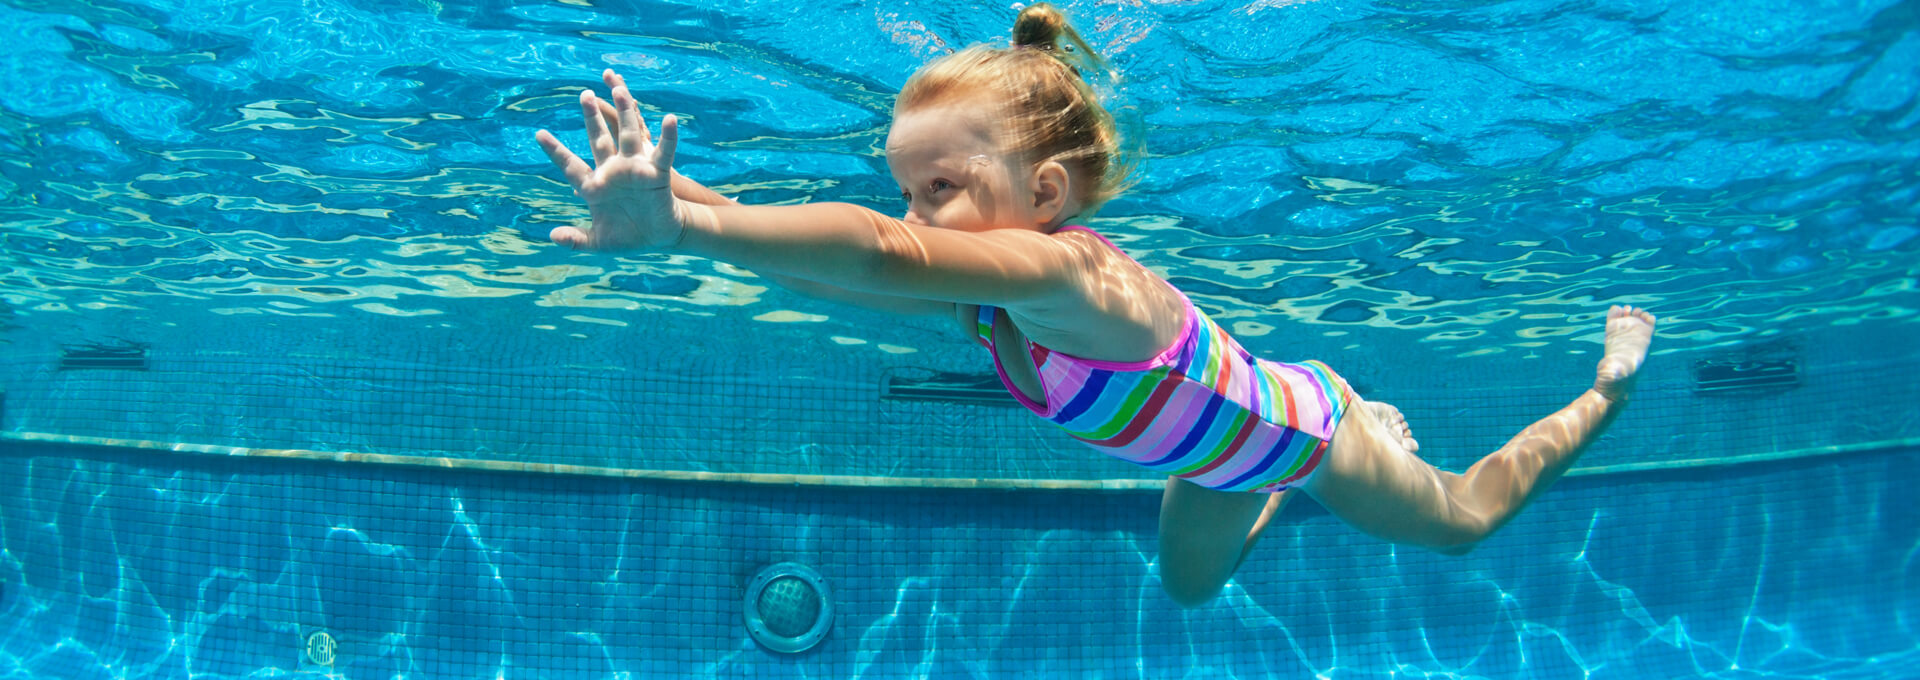 Automatic Swimming Pool Cleaner - Will The Work For You?